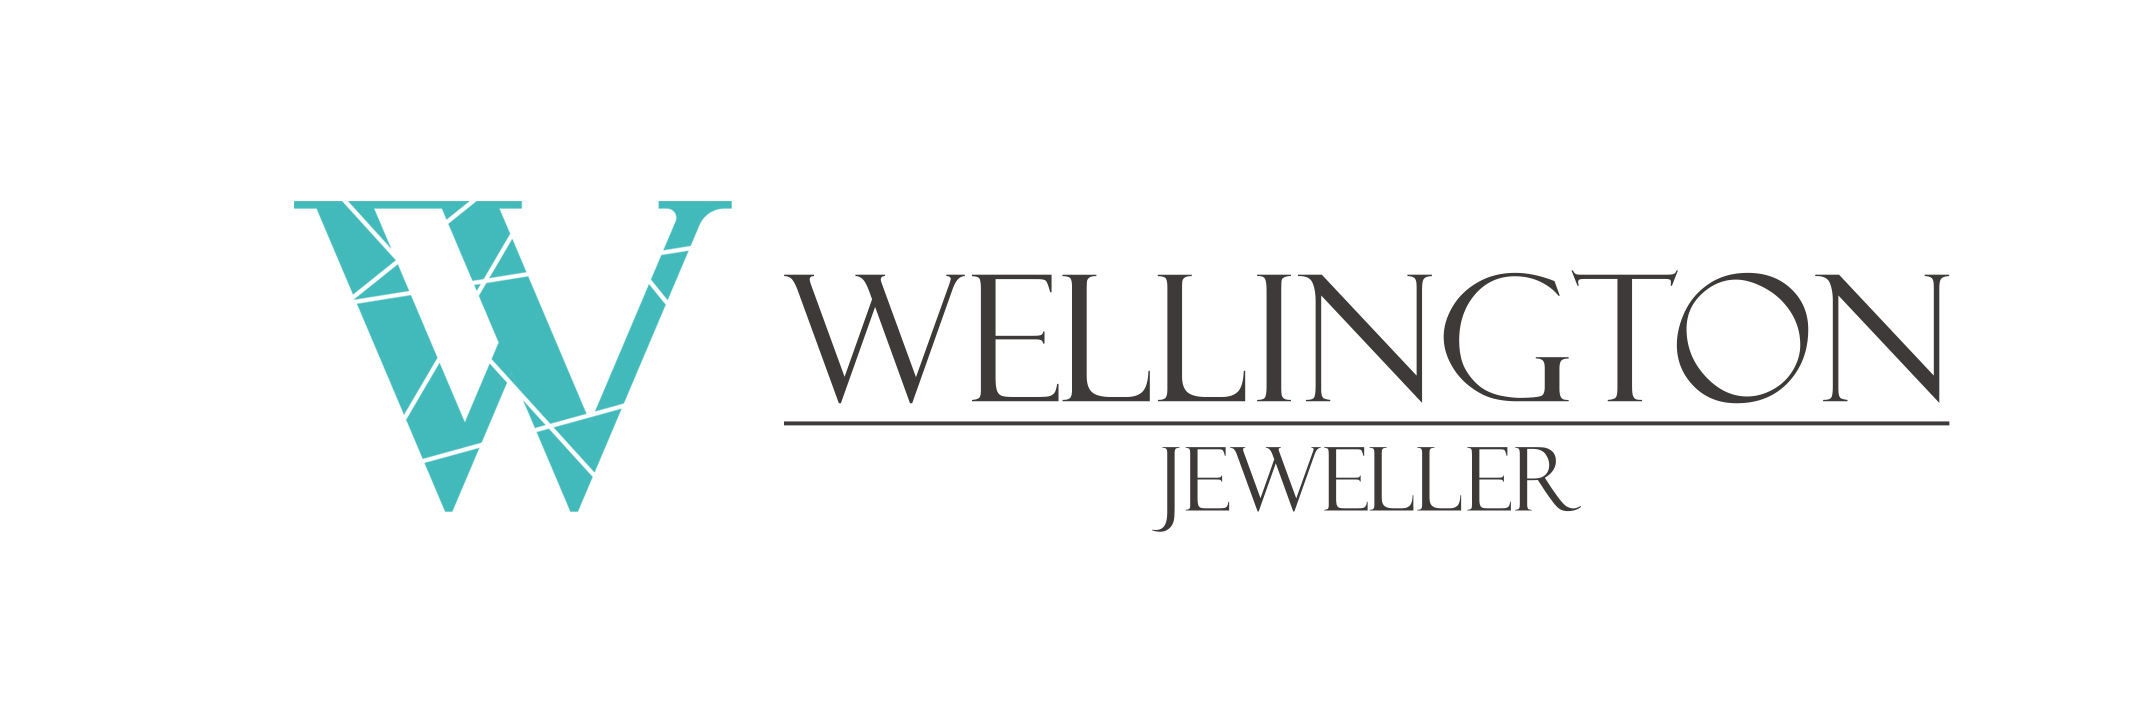 Wellington Jeweller